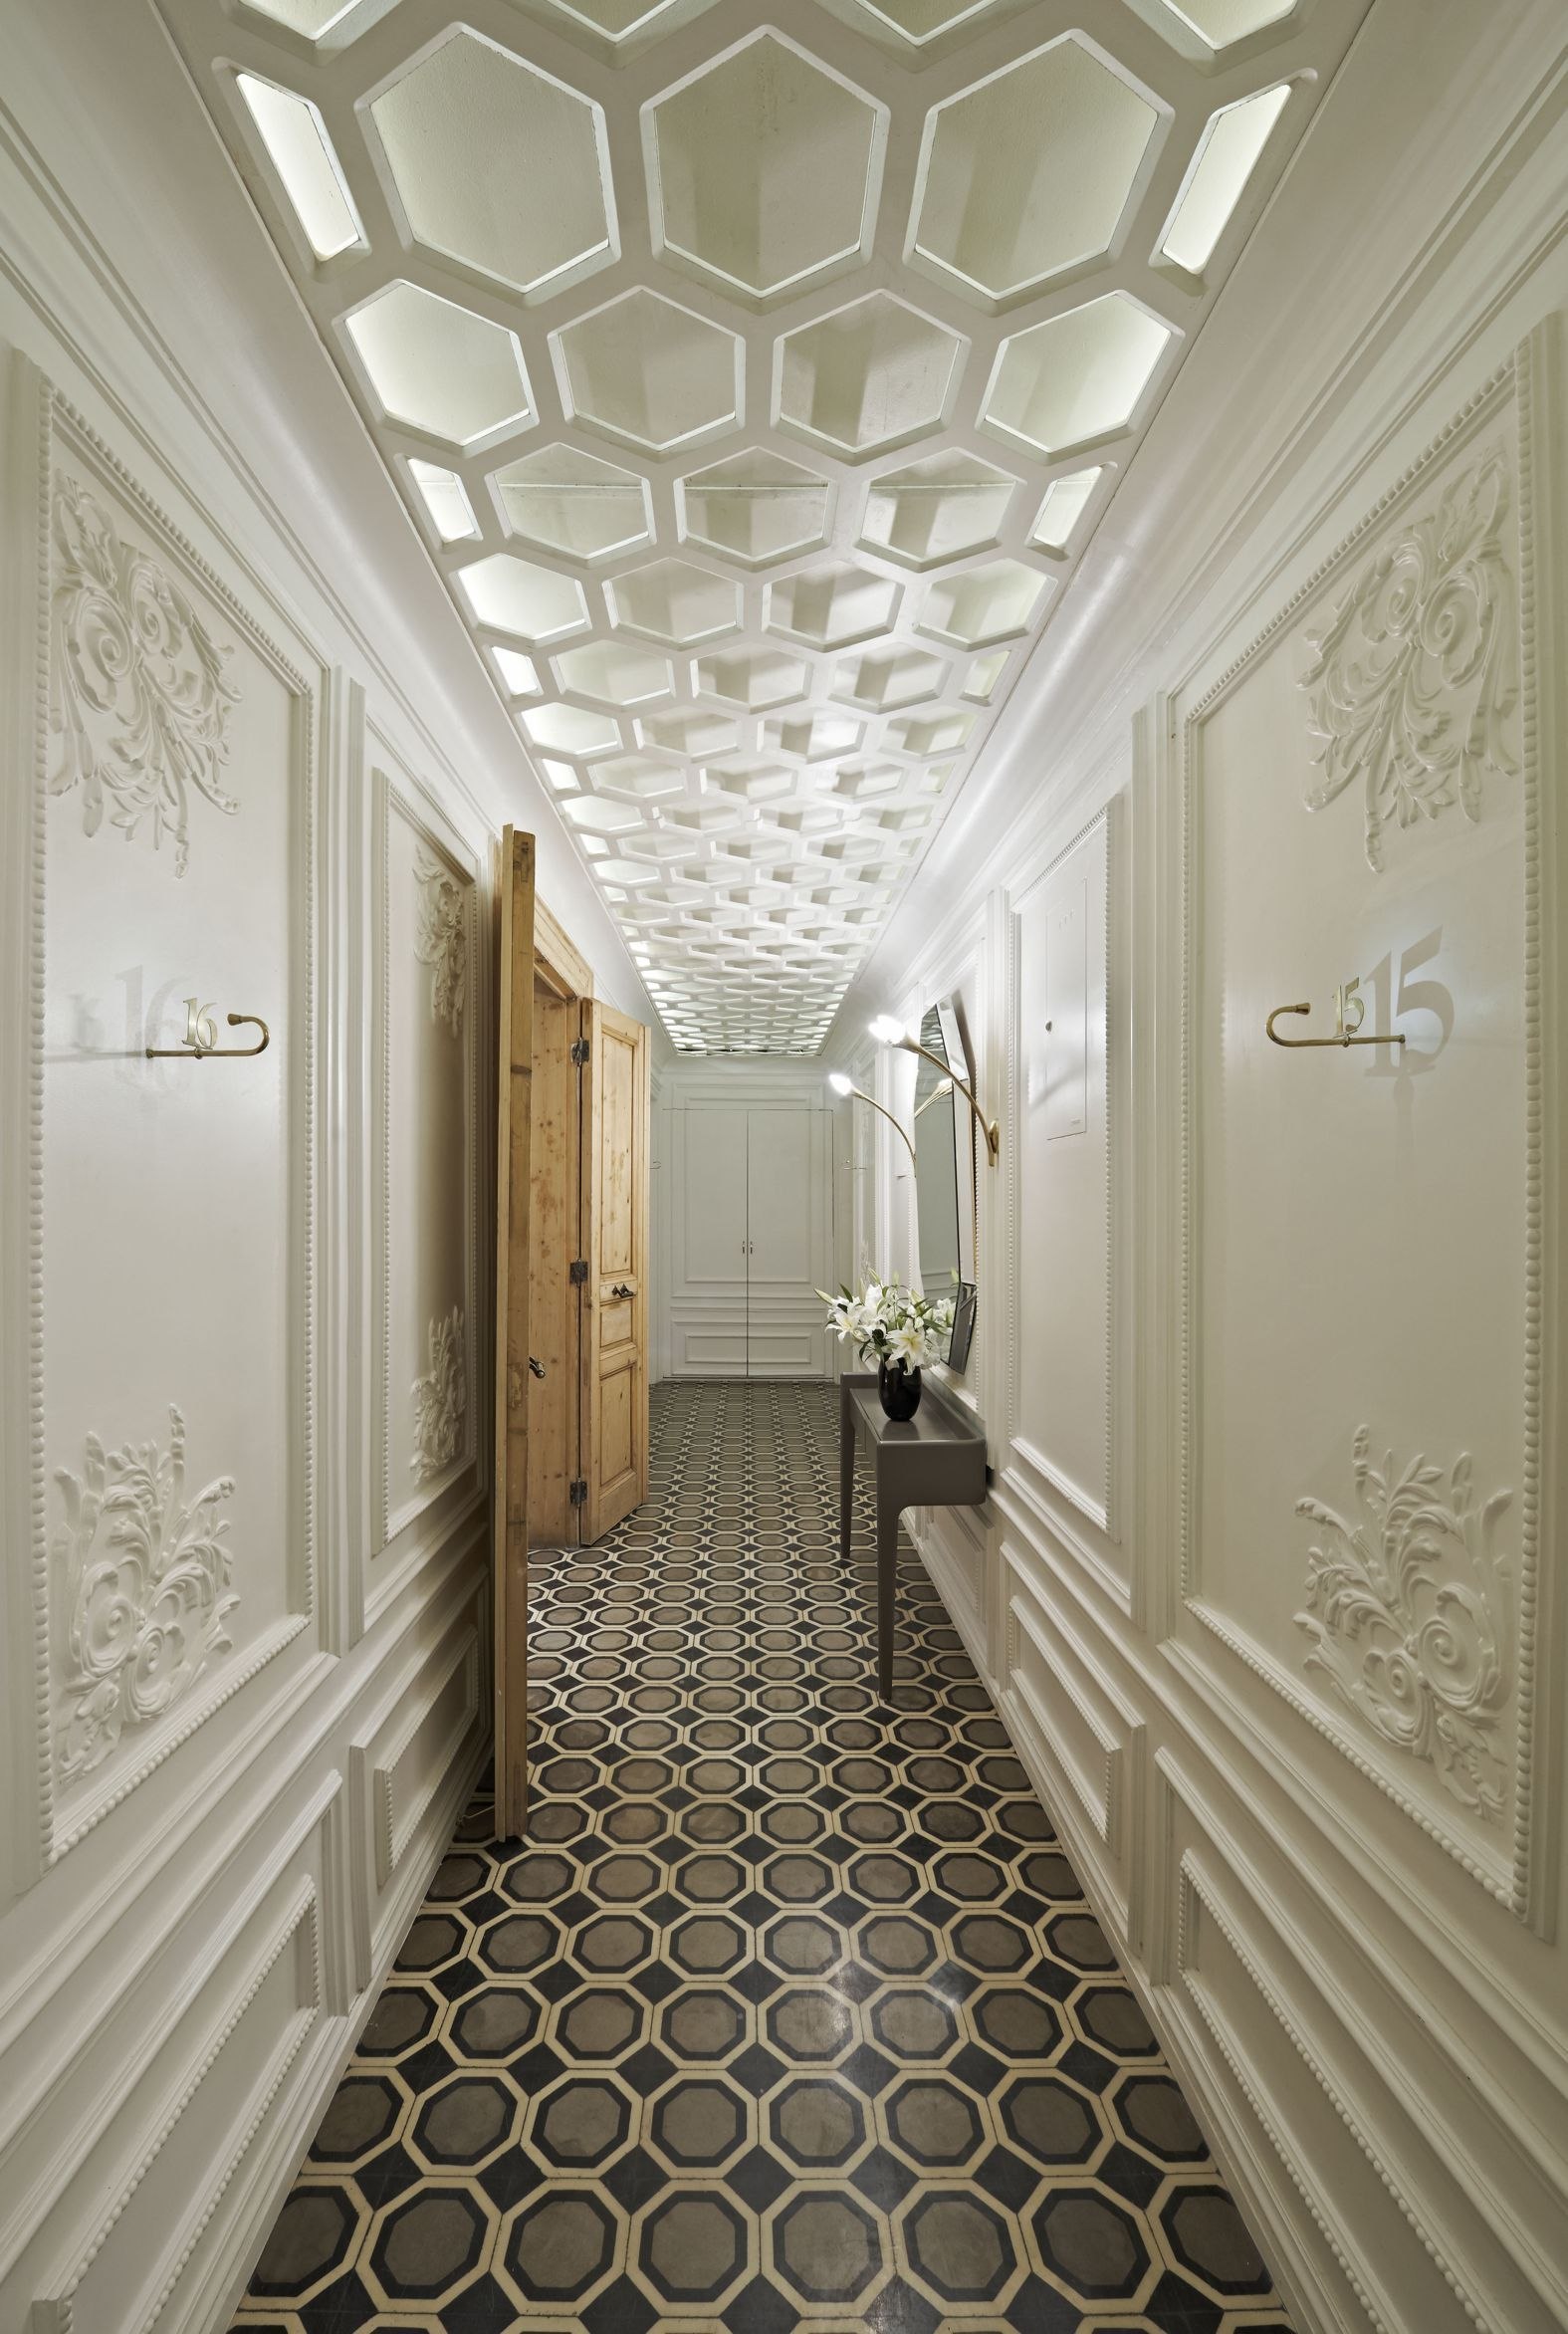 Deckengestaltung Mit Paneele Hotel Corridor Design Google Search Tiles In 2019 Design Hotel